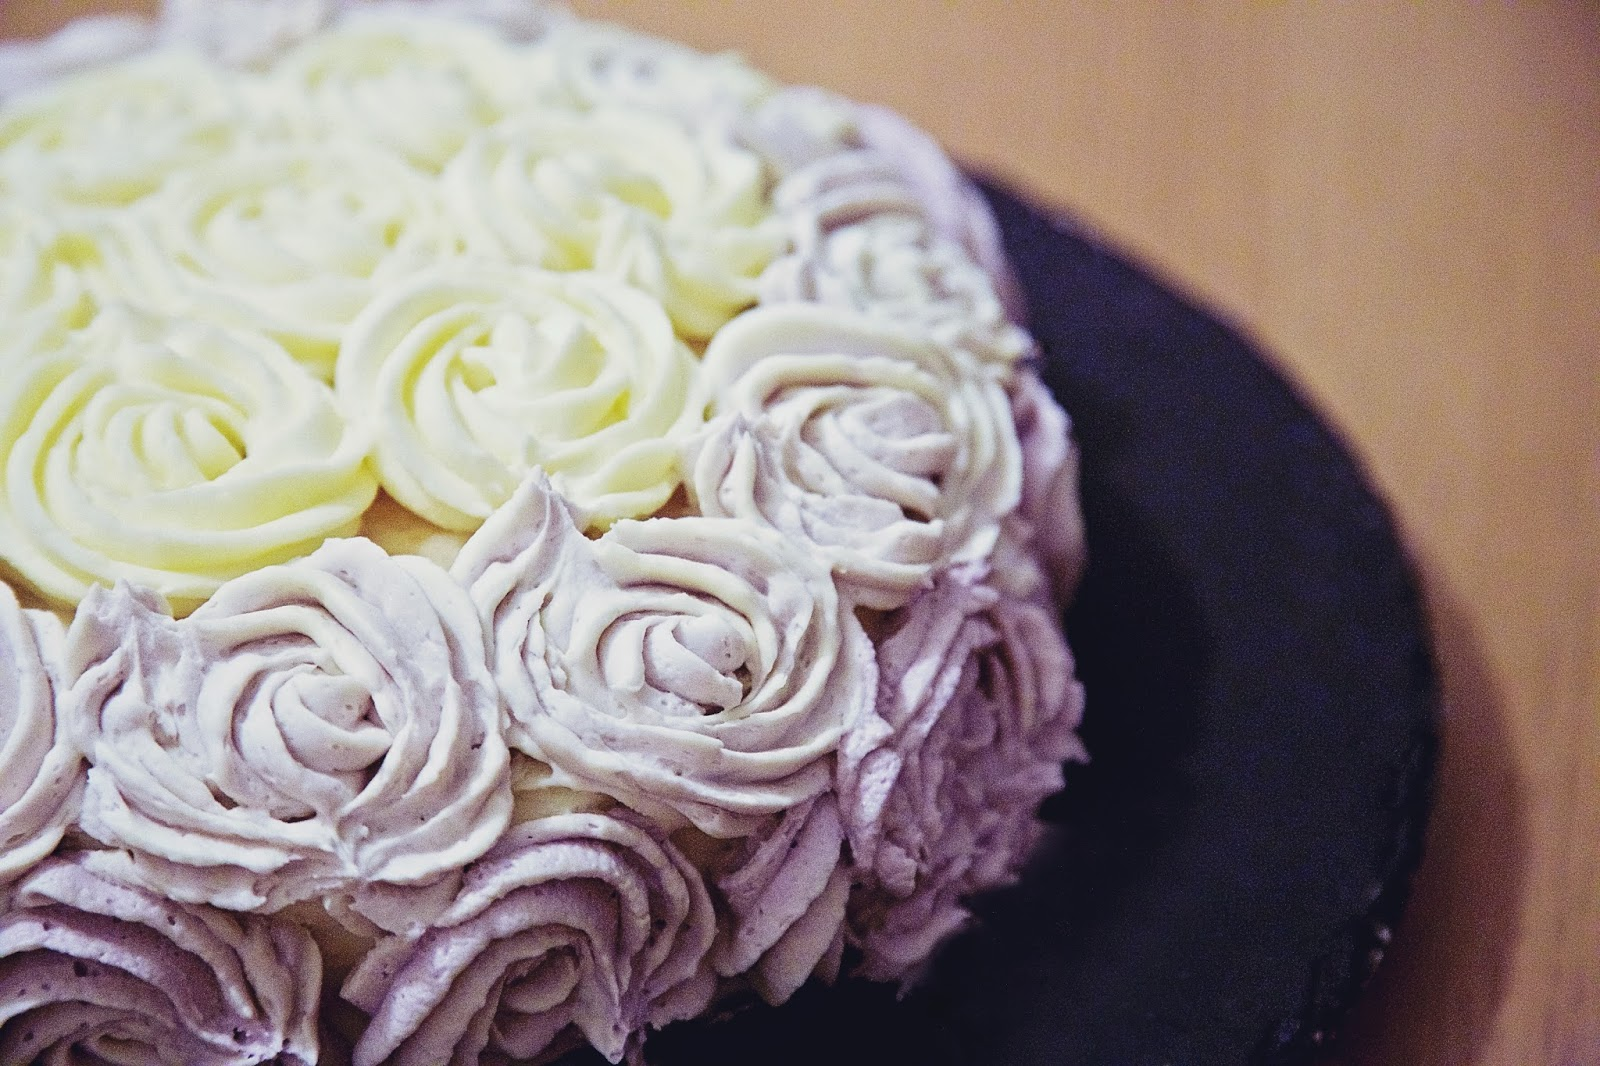 Close up of the swirled icing of the ombre cake